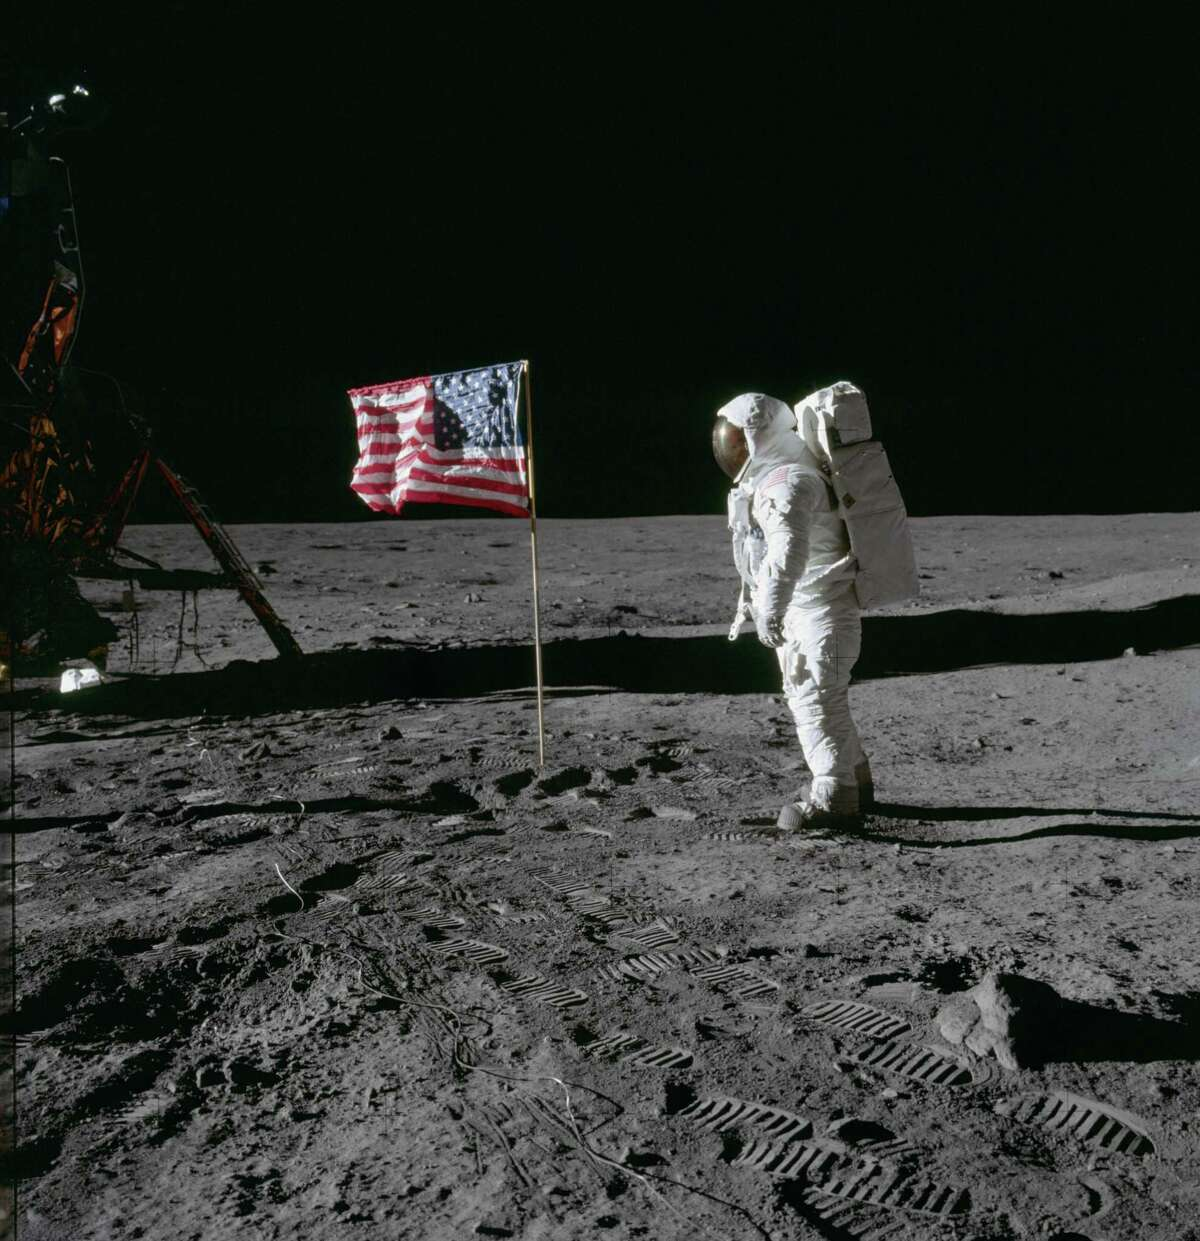 Astronaut Edwin E. Aldrin Jr., lunar module pilot of the first lunar landing mission, poses for a photograph beside the deployed United States flag during an Apollo 11 extravehicular activity (EVA) on the lunar surface. The Lunar Module (LM) is on the left, and the footprints of the astronauts are clearly visible in the soil of the moon. (NASA)